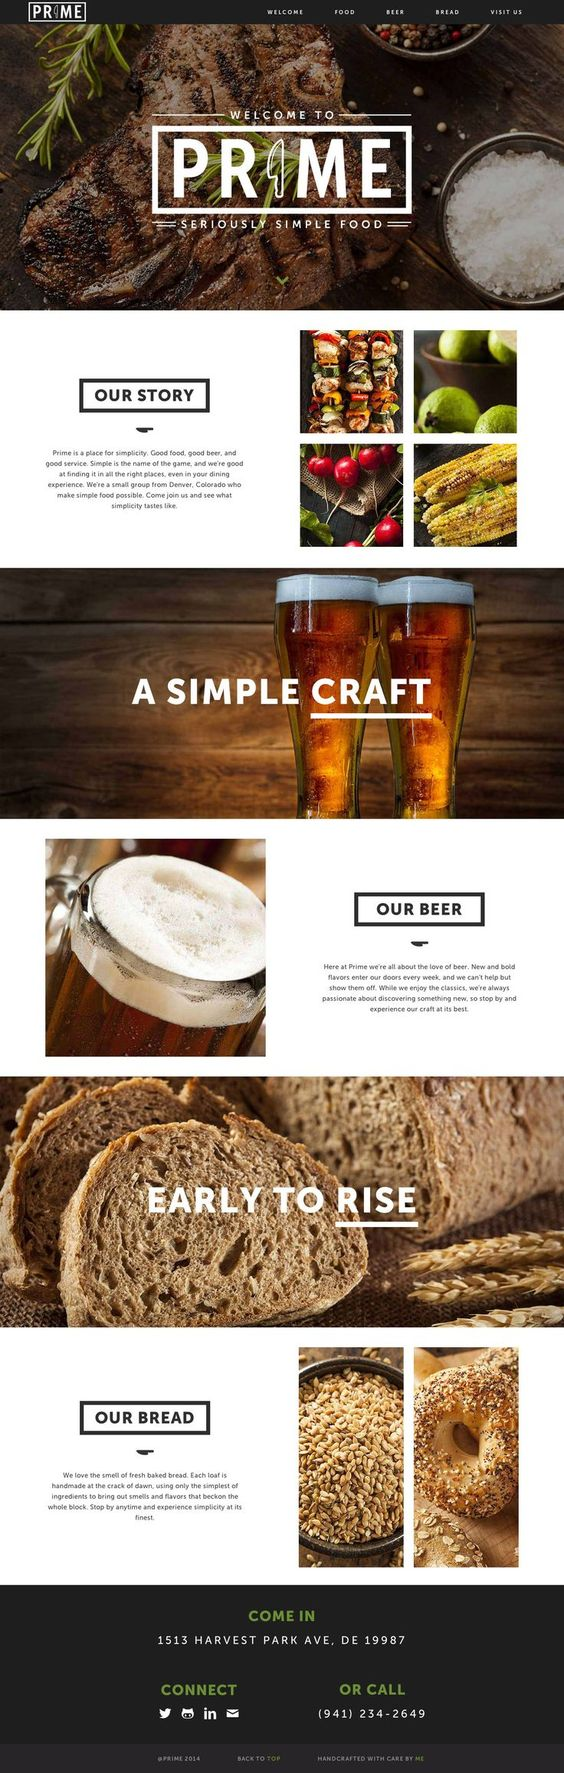 Great looking landing page for a fictitious restaurant called Prime - the purpose being to showcase the development skills on Ryan McHenry. The footer alignment seems off... but good imagery and clean layout.